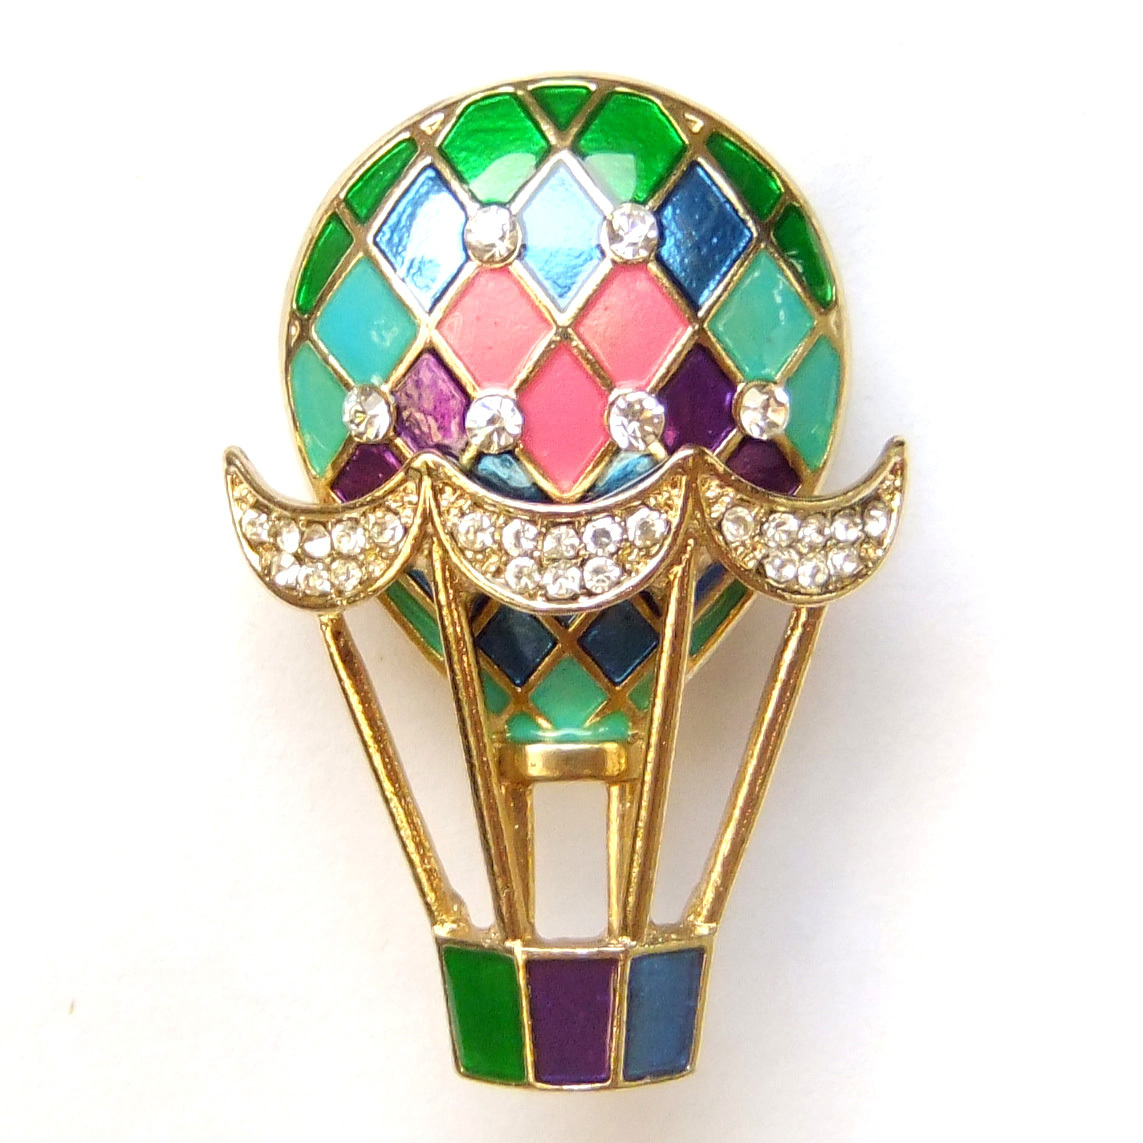 Primary image for Colorful Hot Air Balloon Pink Green Purple Gold Sparkle Crystal Brooch Pin Gift